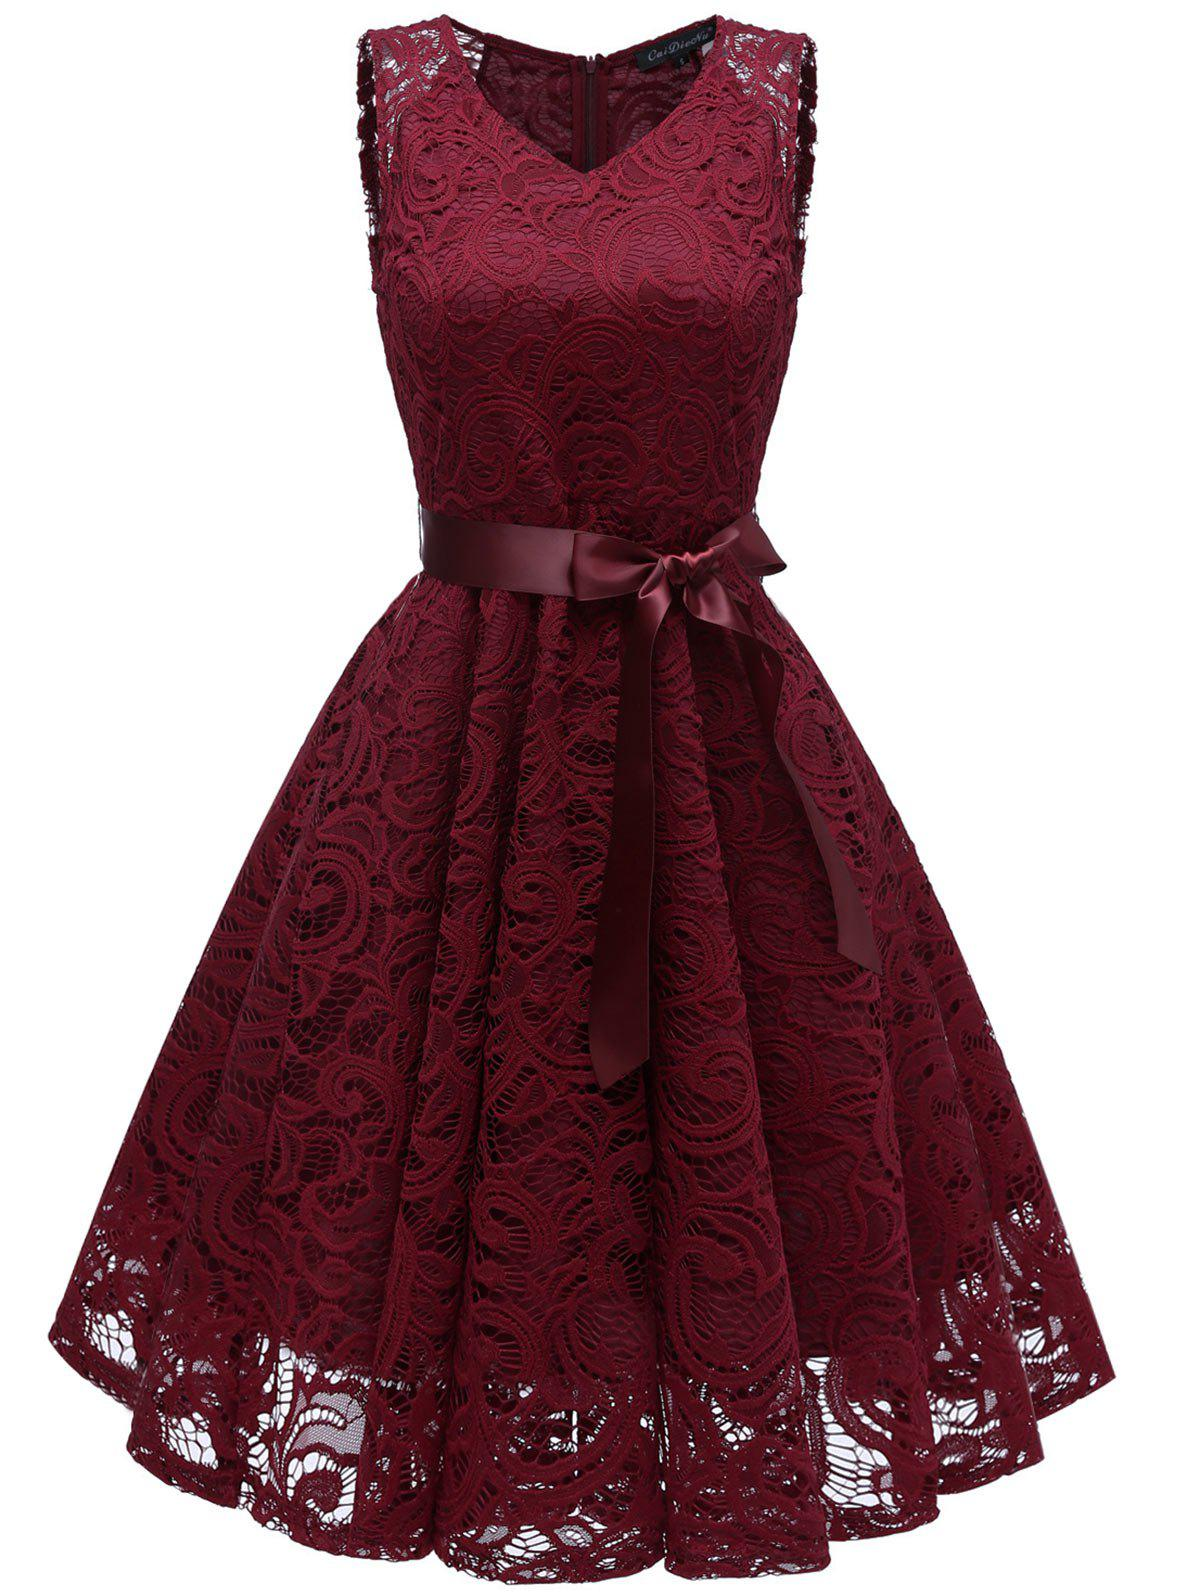 Lace Flare Belted Cocktail Dress - RED WINE XL